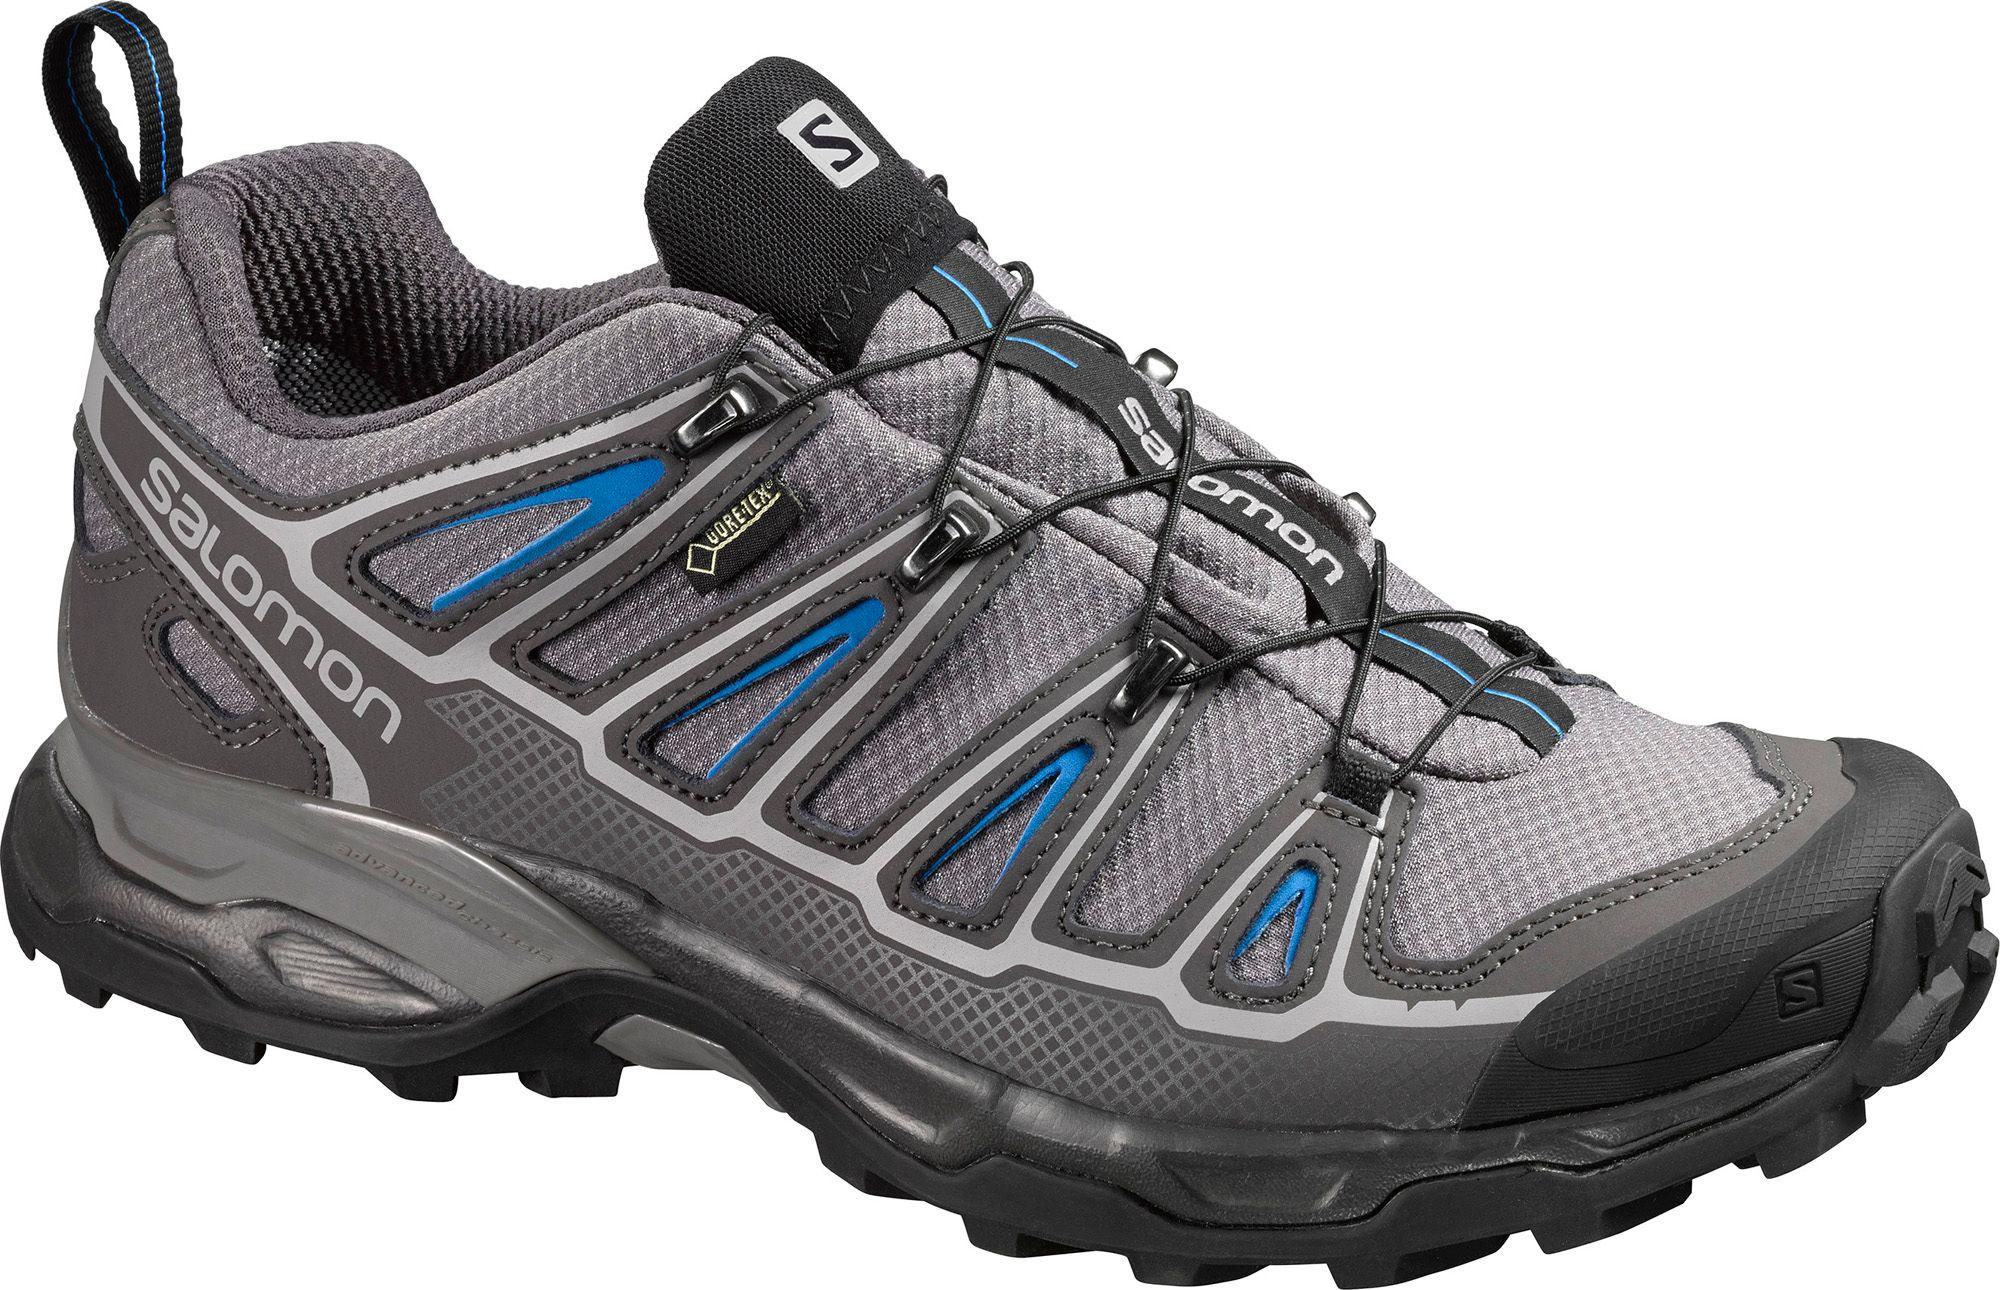 3b72c0524ef807 Lyst - Yves Salomon X Ultra 2 Gore-tex Hiking Shoes in Gray for Men